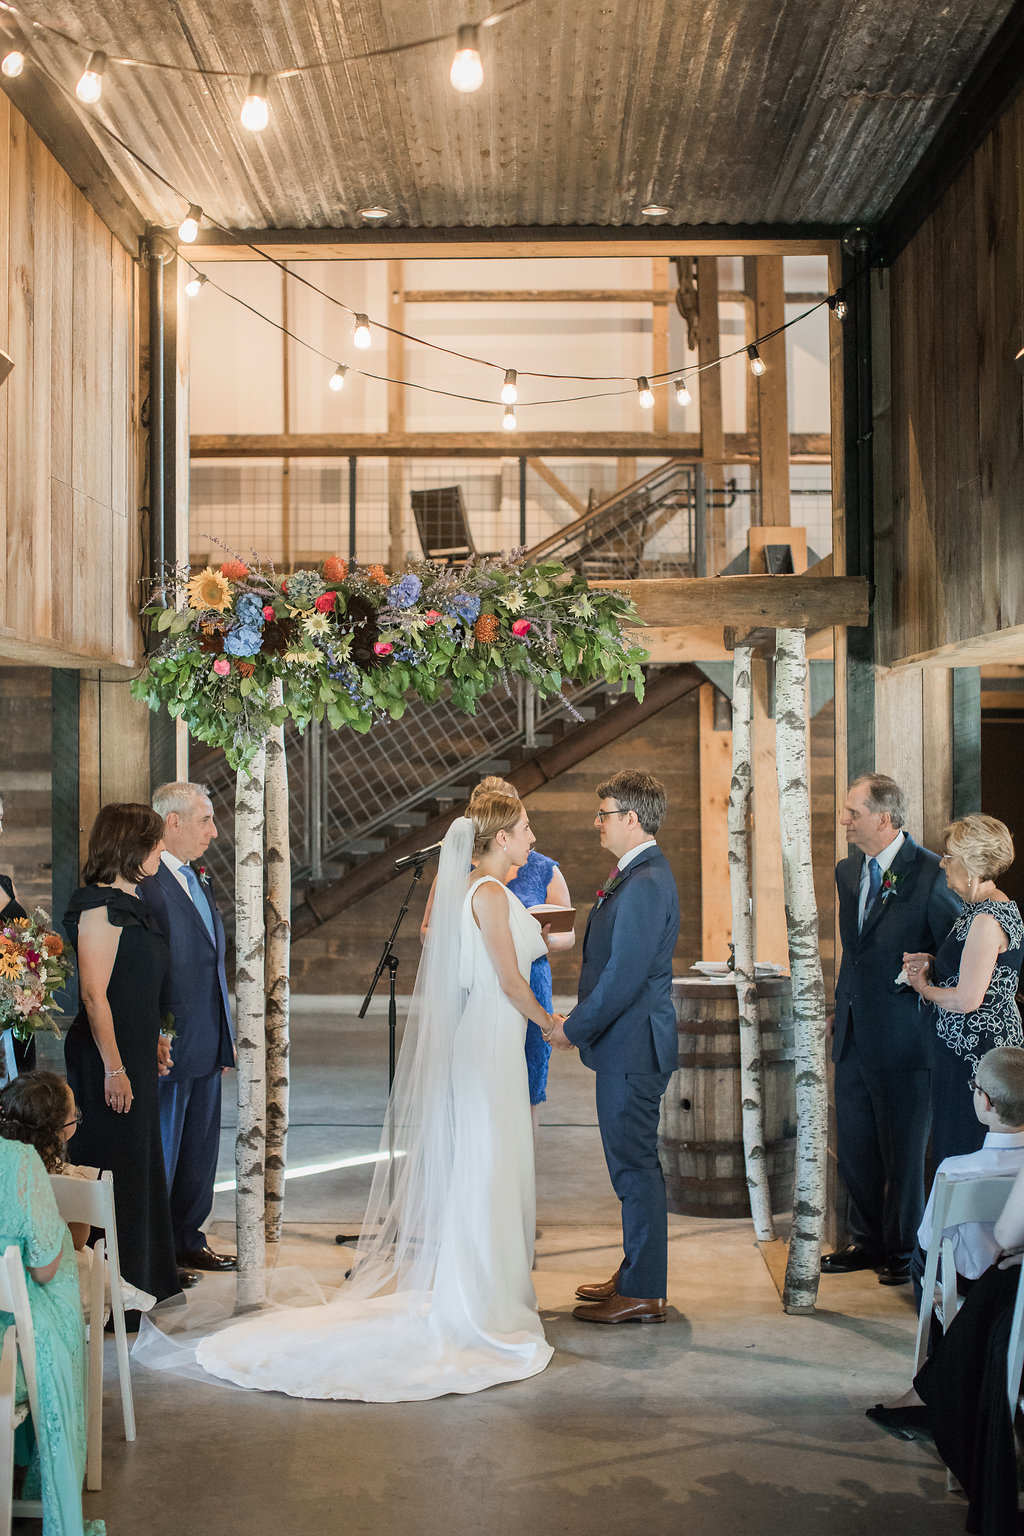 Monica-Relyea-Events-Kelsey-Combe-Photography-Dana-and-Mark-South-Farms-wedding-morris-connecticut-barn-tent-jewish-farm-country-litchfield-county567